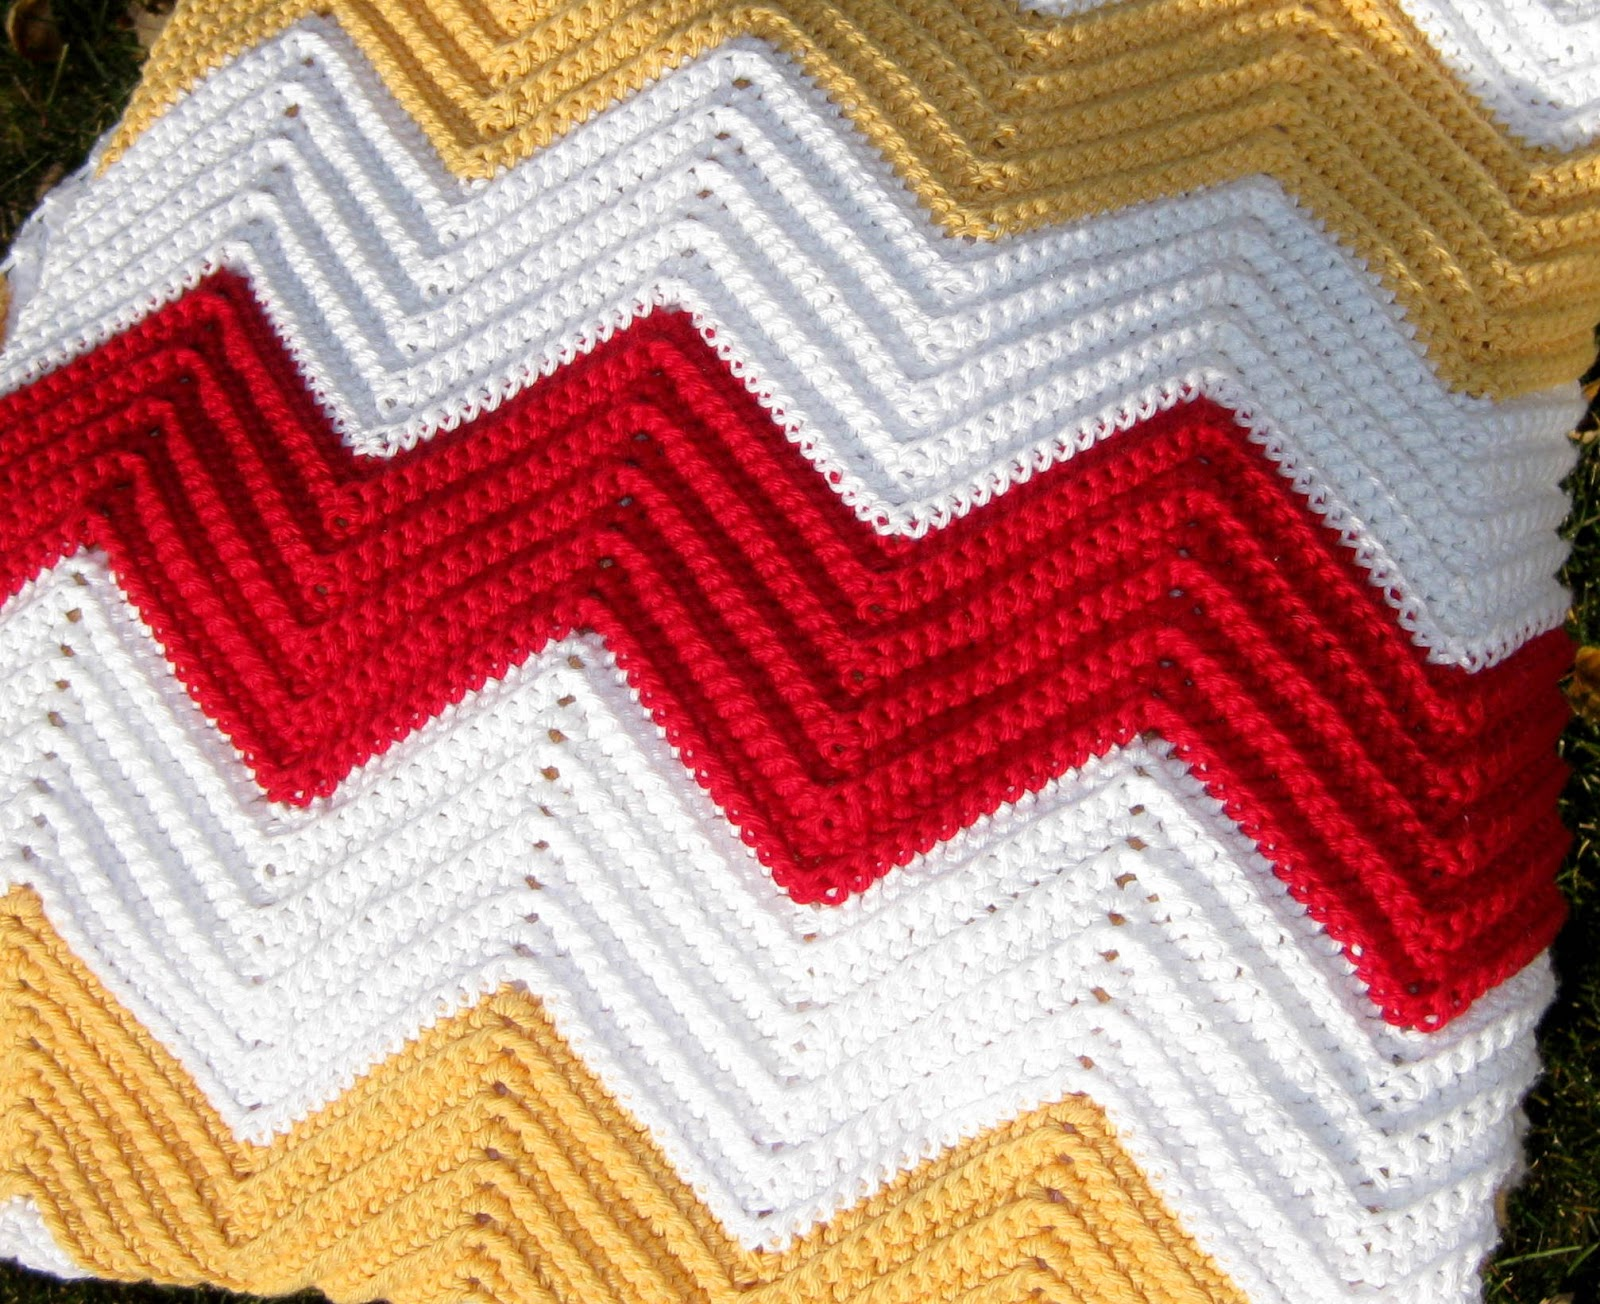 Free Pattern For Single Crochet Ripple Afghan : If you know how to single crochet then you can make this ...